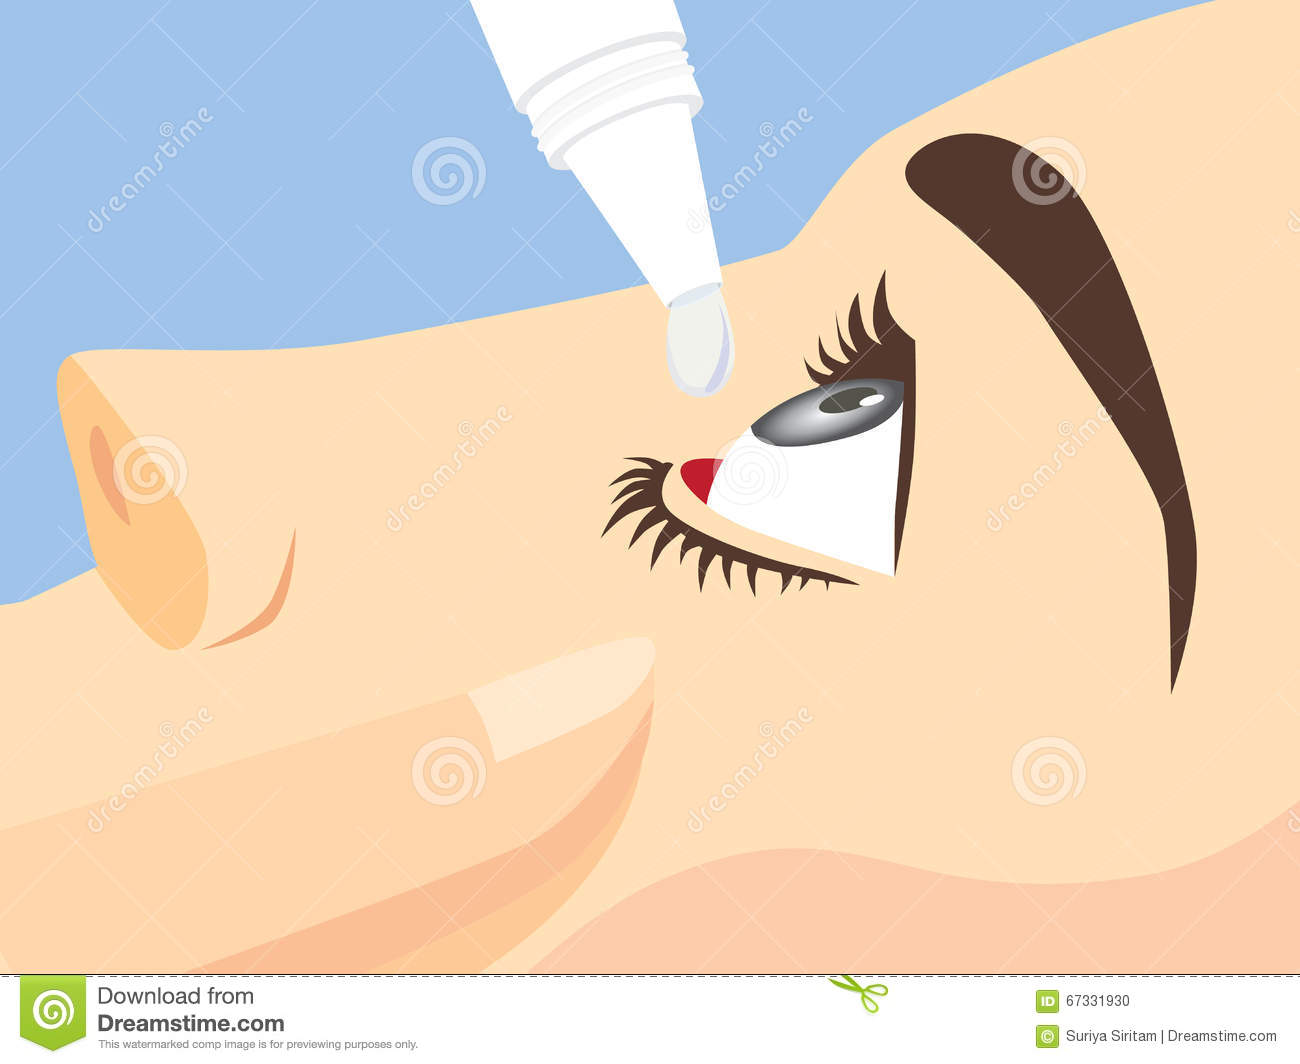 d08899252e0 Eye Treatment With Eye Drops Stock Vector - Illustration of clean ...